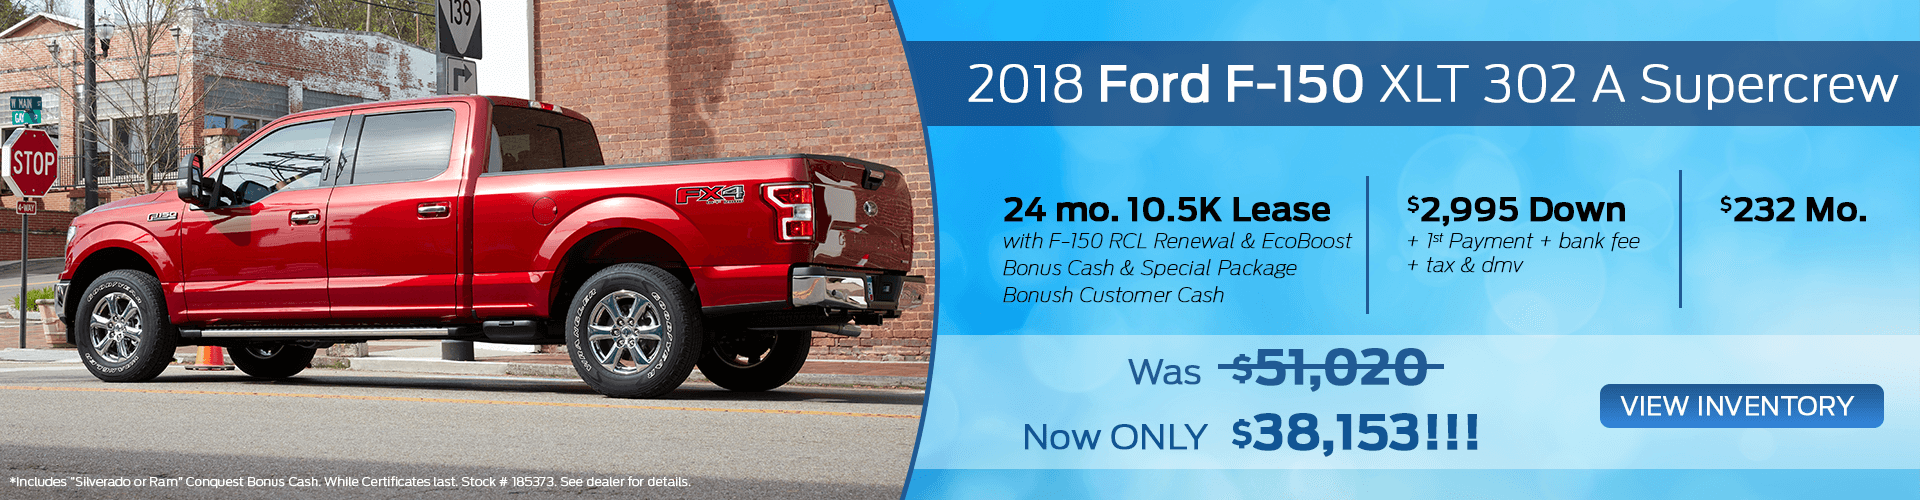 2018 Ford F-105 XLT 302 A Supercrew For Sale On Long Island NY